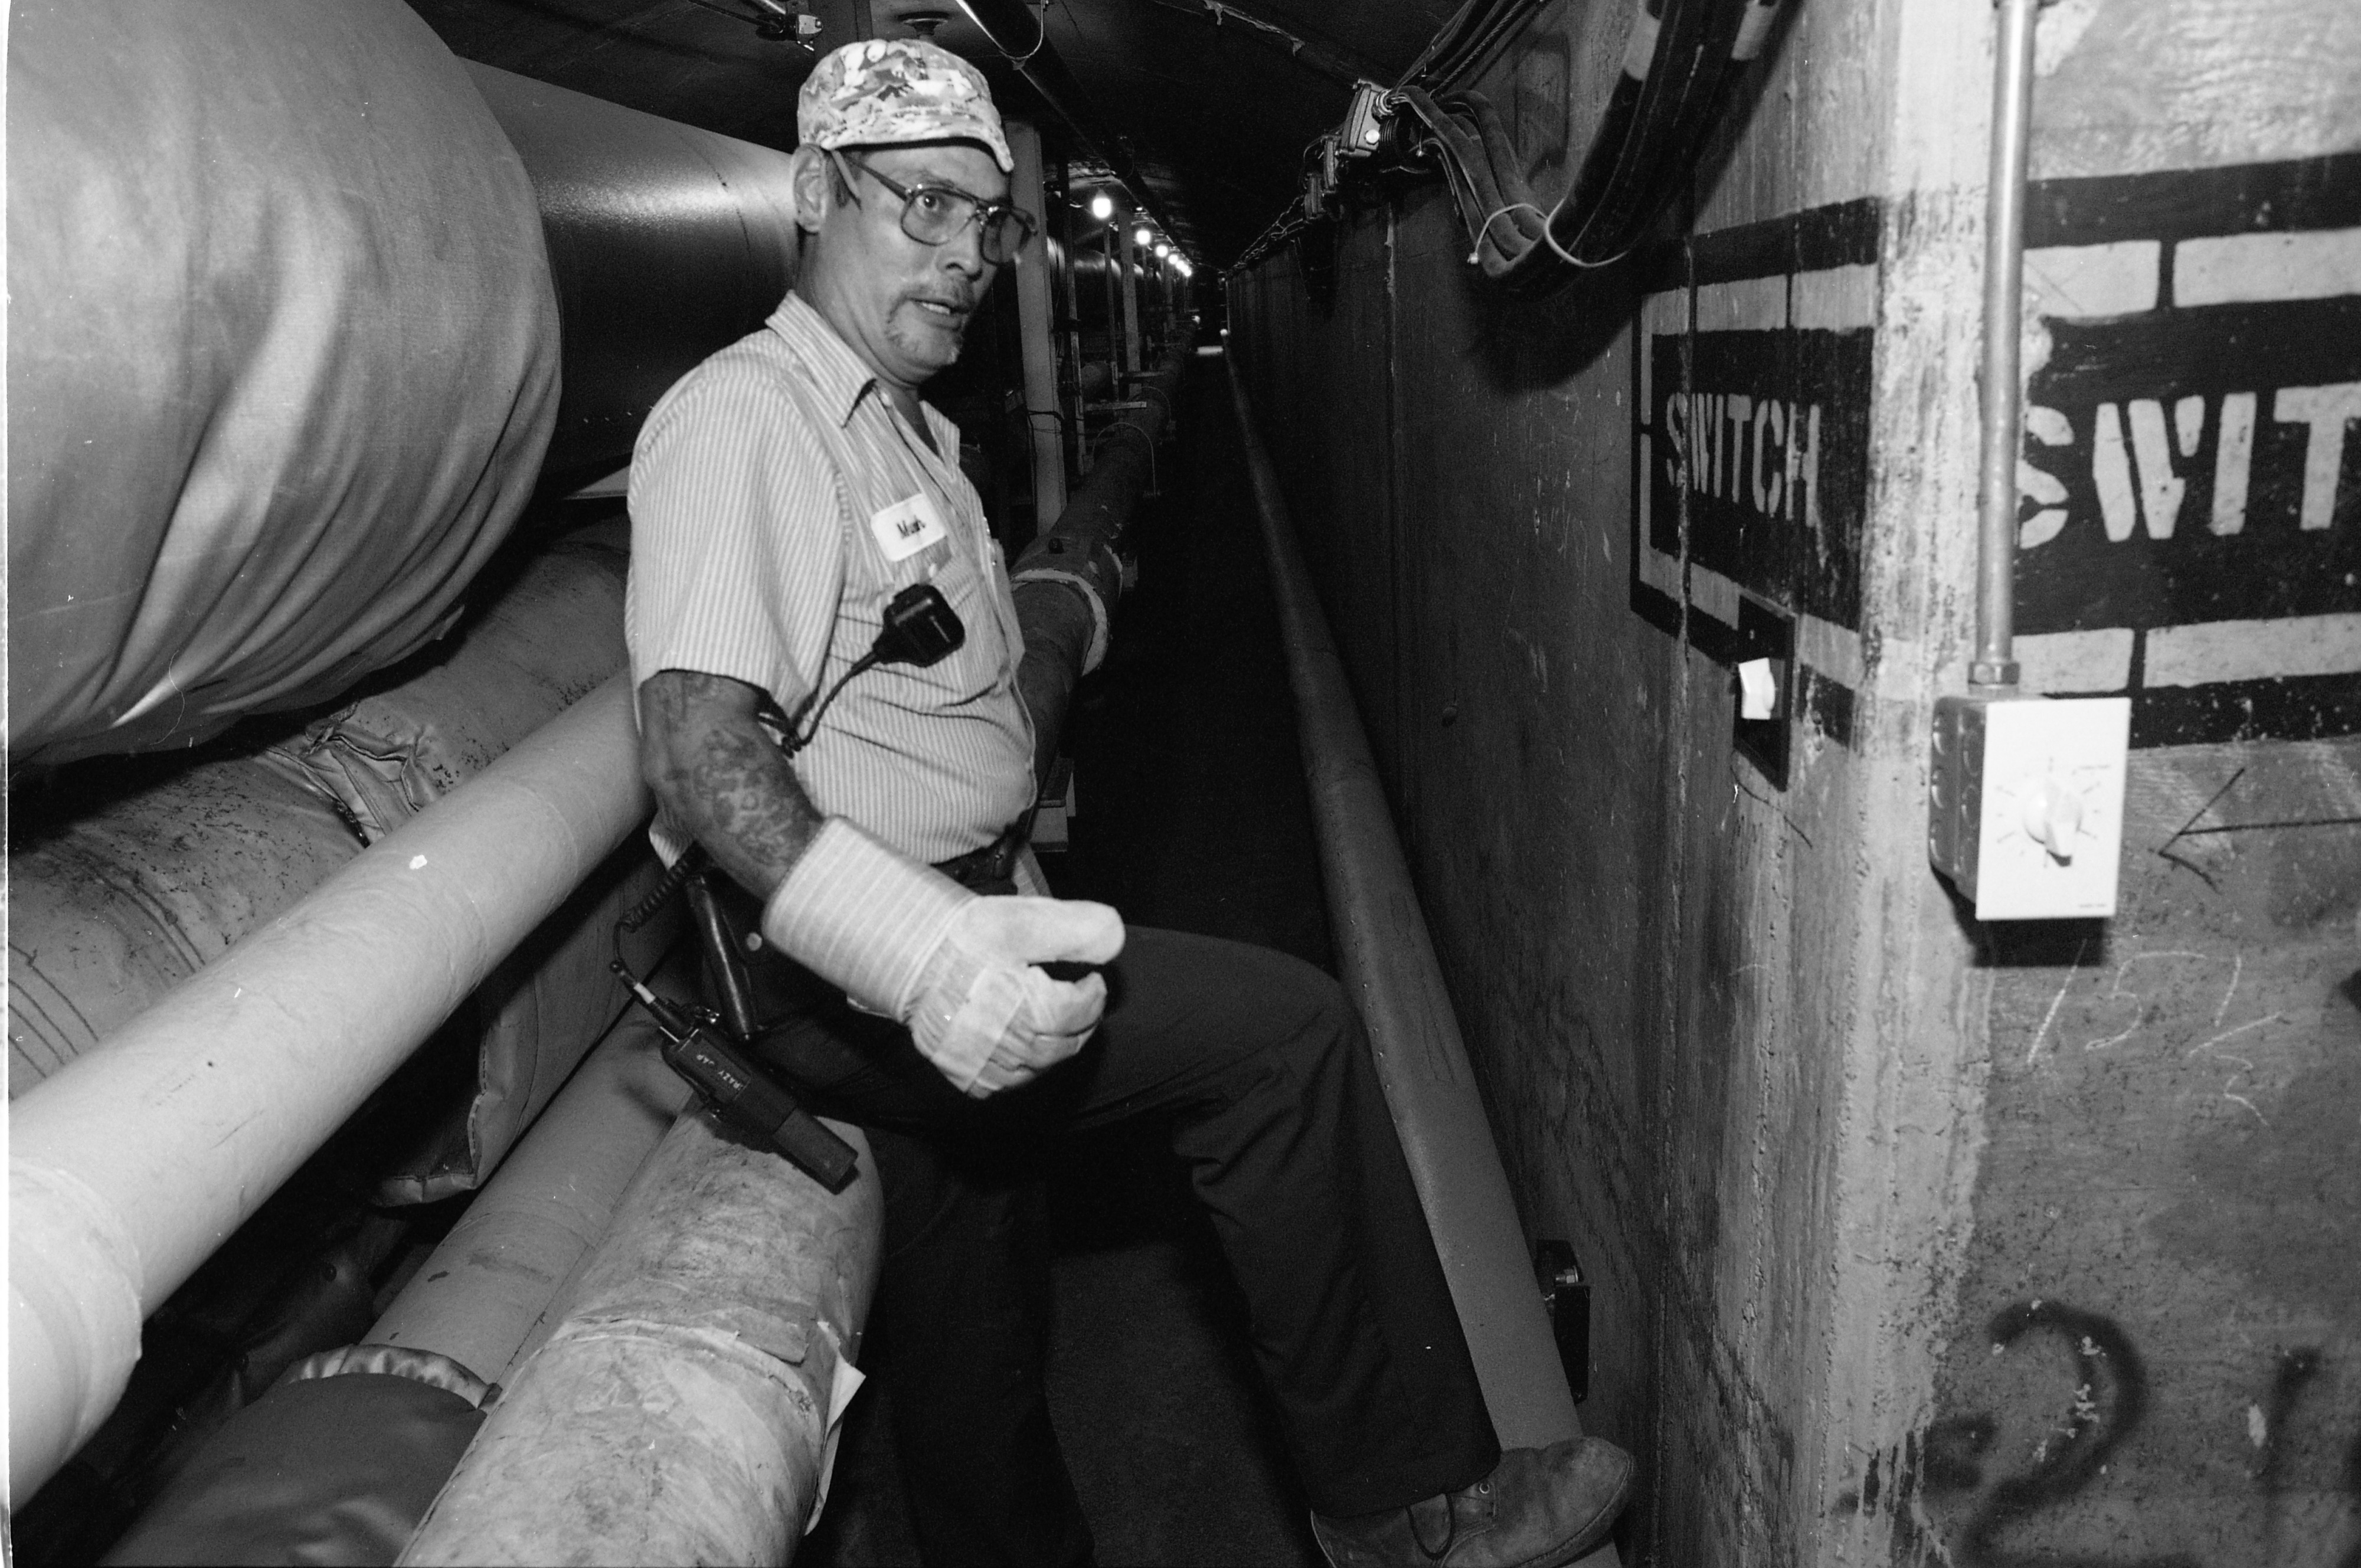 Mike Klapperich, Steamfitter, Working On The Pipes In The U-M Tunnels, July 28, 1993 image